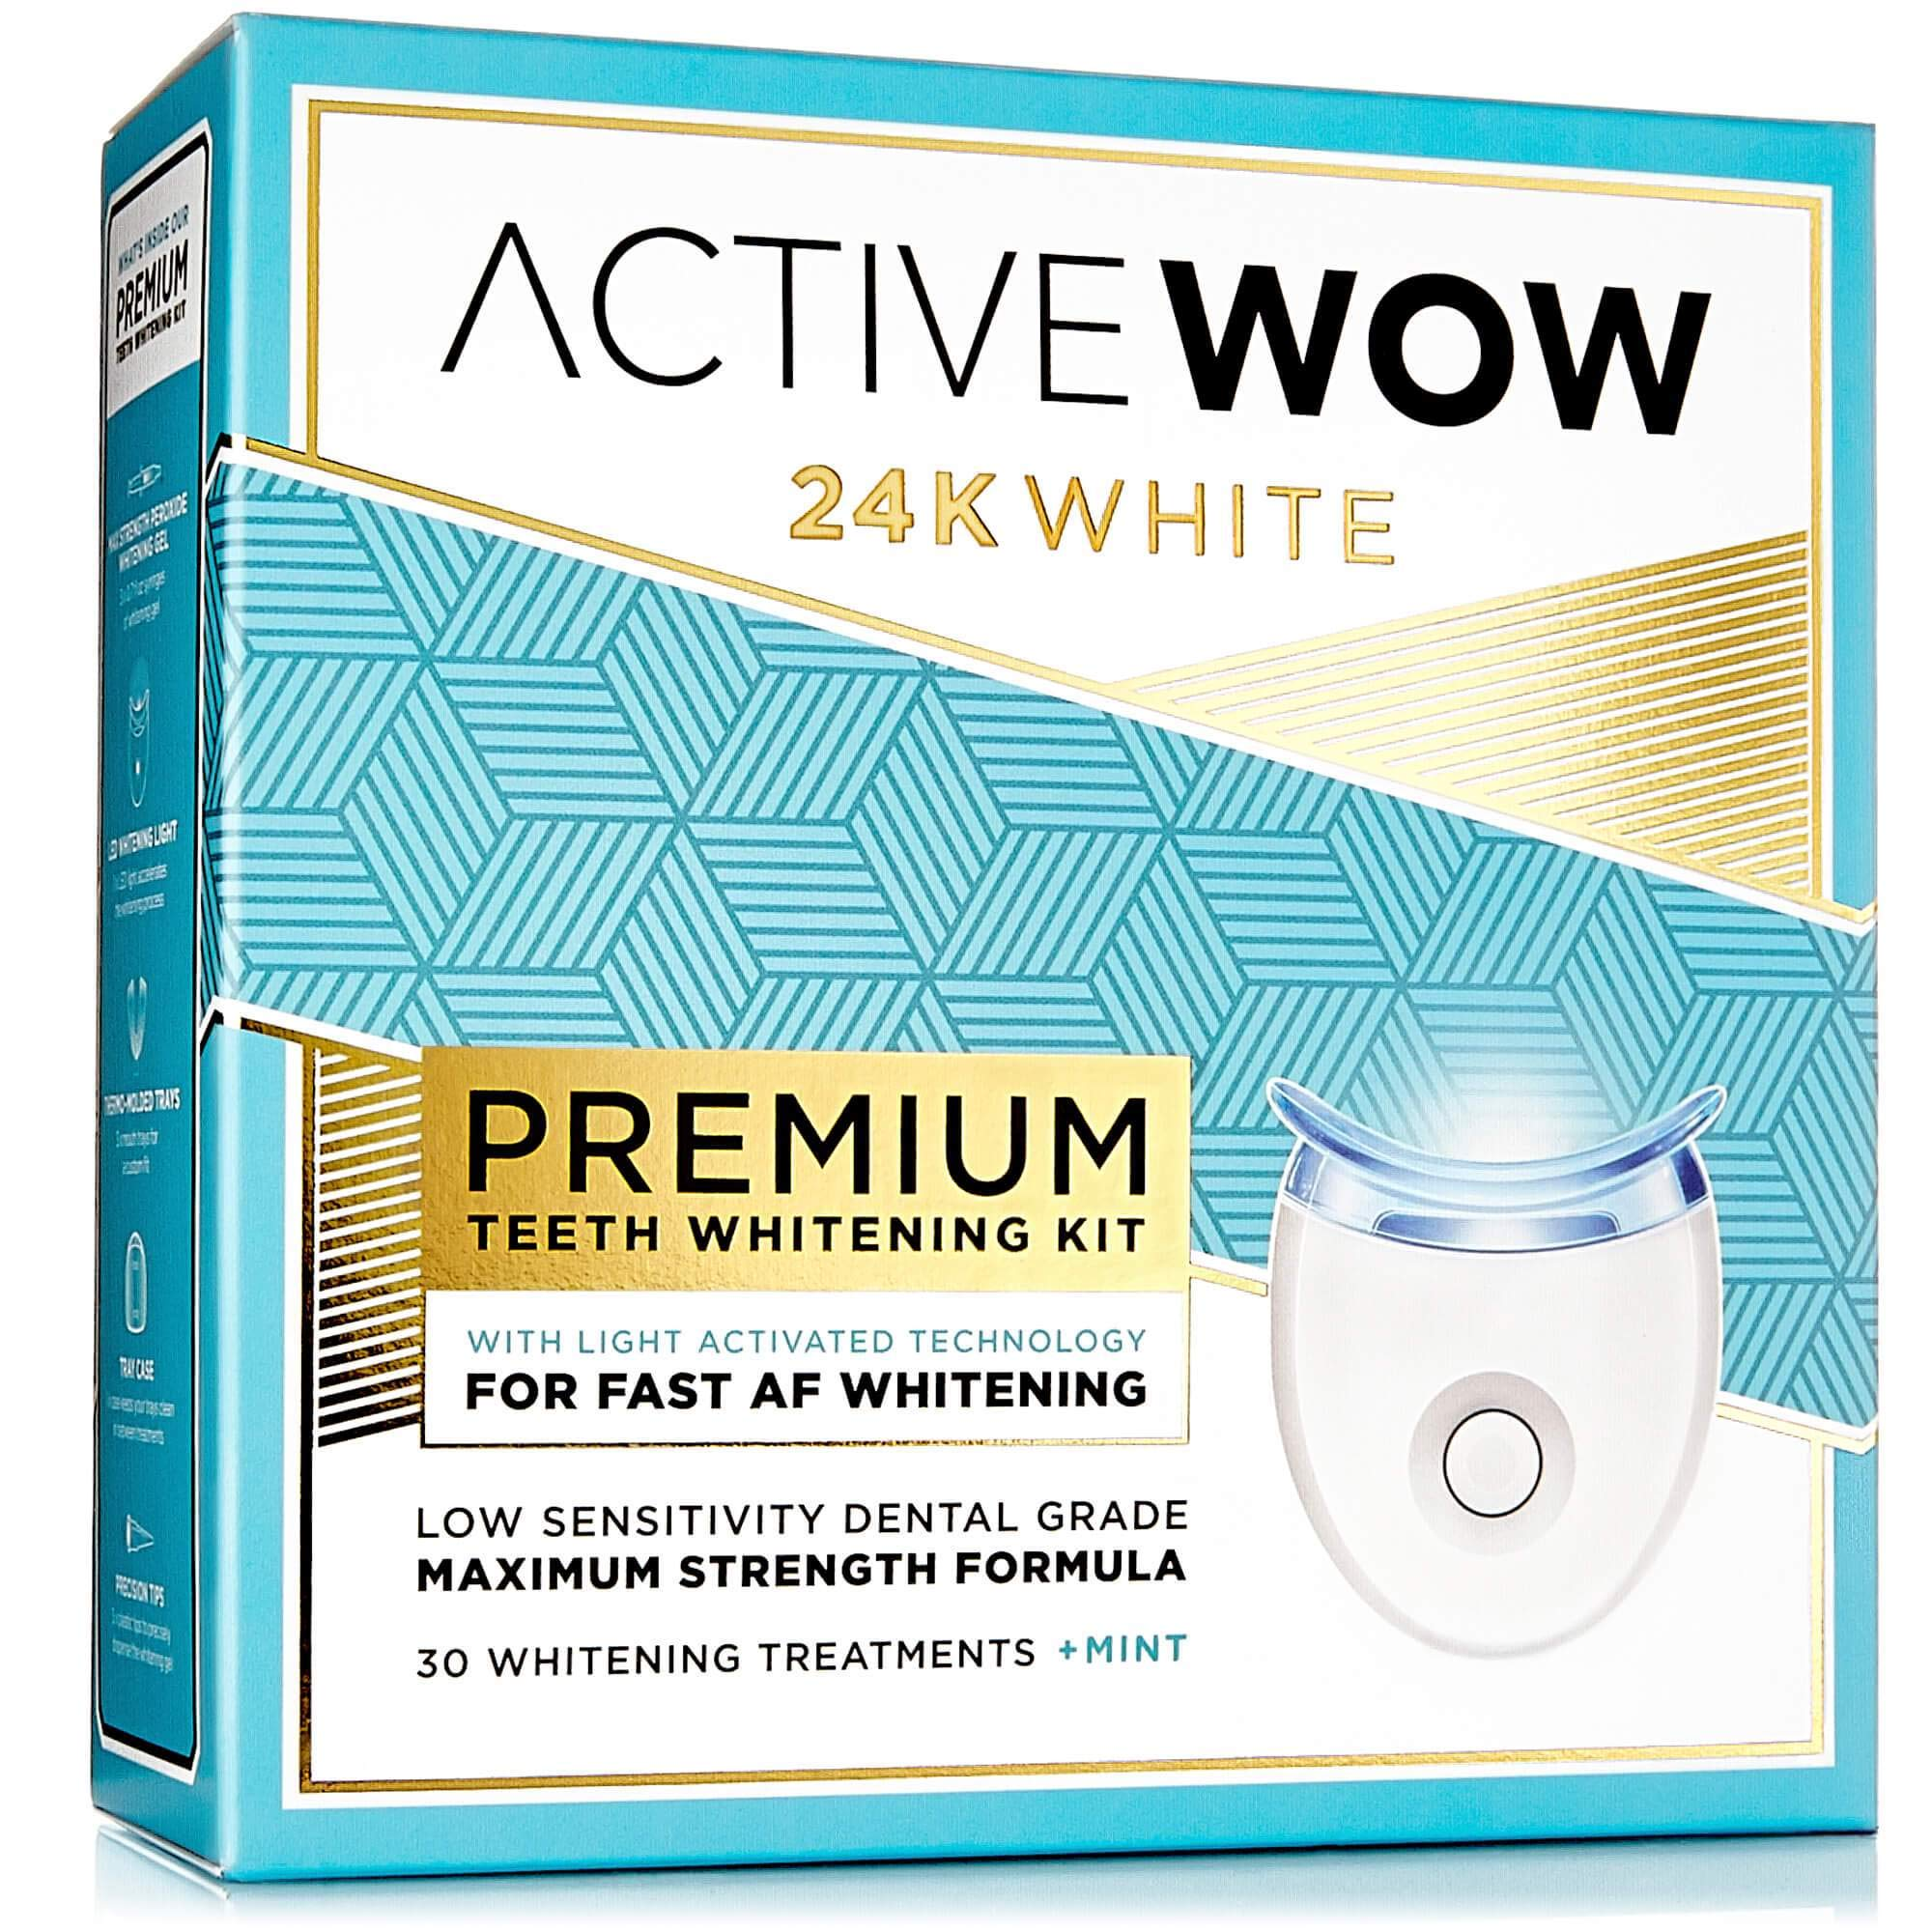 Active Wow - Teeth Whitening Kit